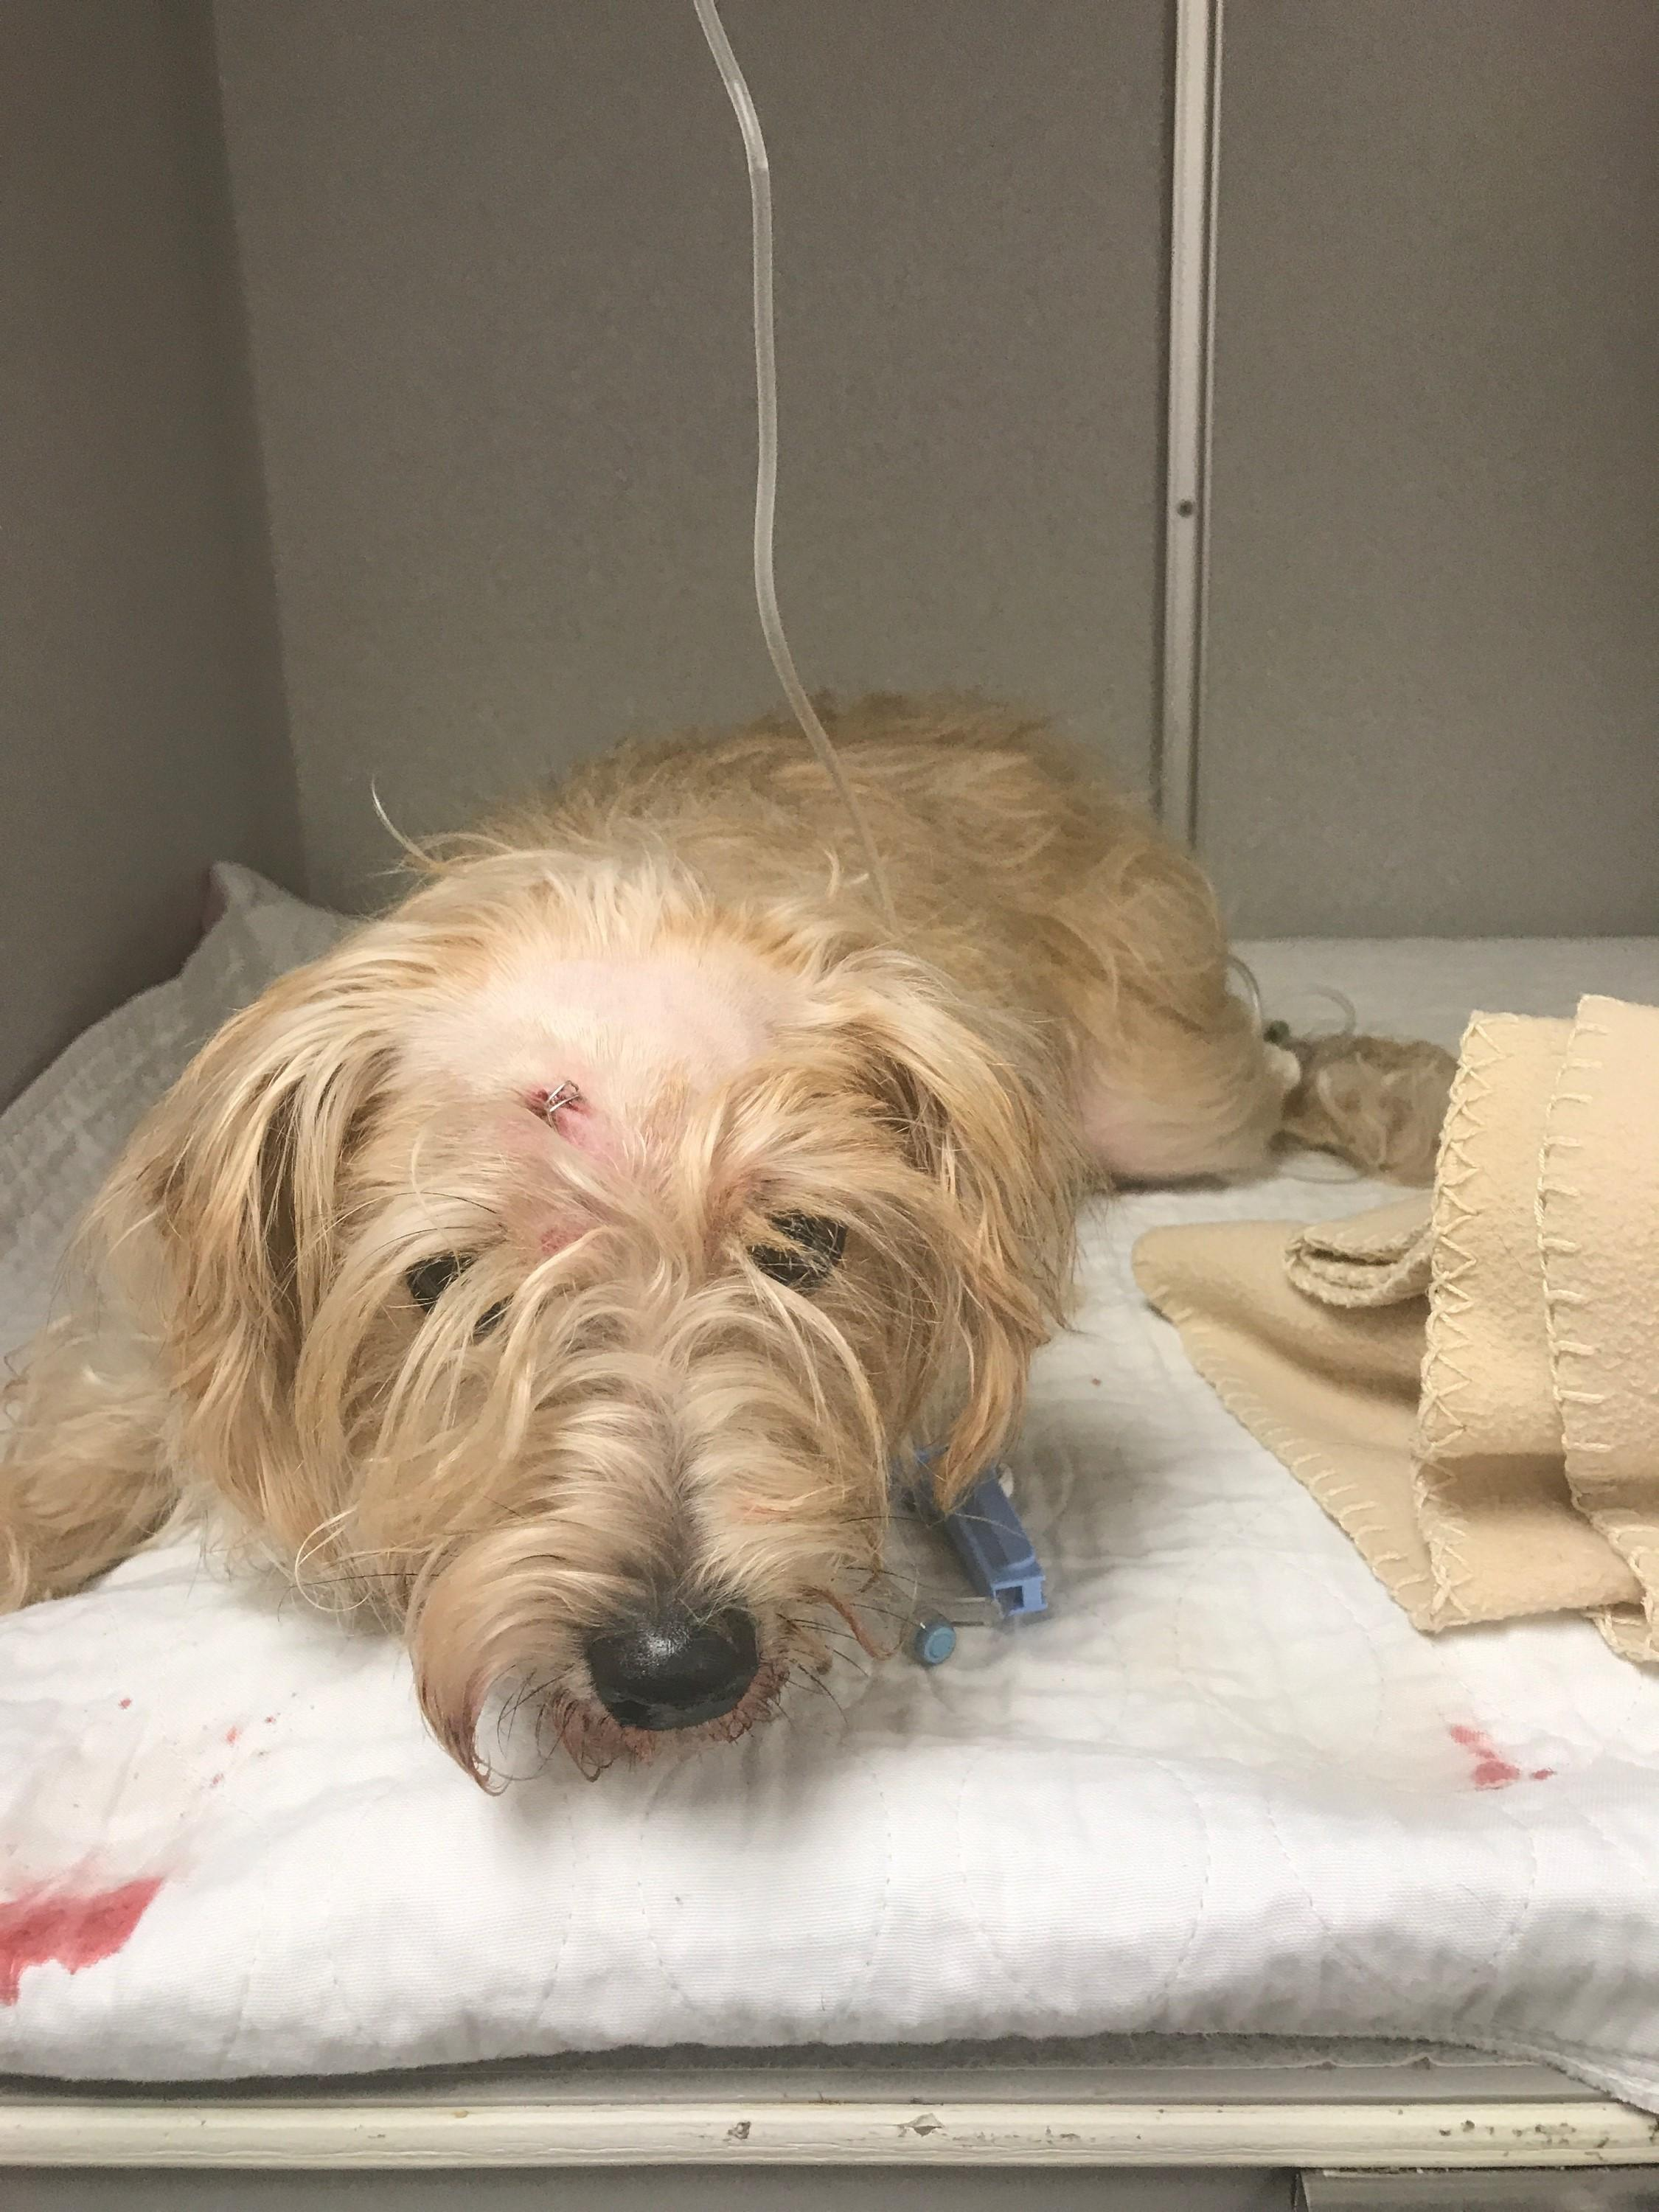 Officers are looking for the owners of a female terrier mix dog after a man was seen beating the animal with a baseball bat Friday morning, Springfield Police said. (SPD)